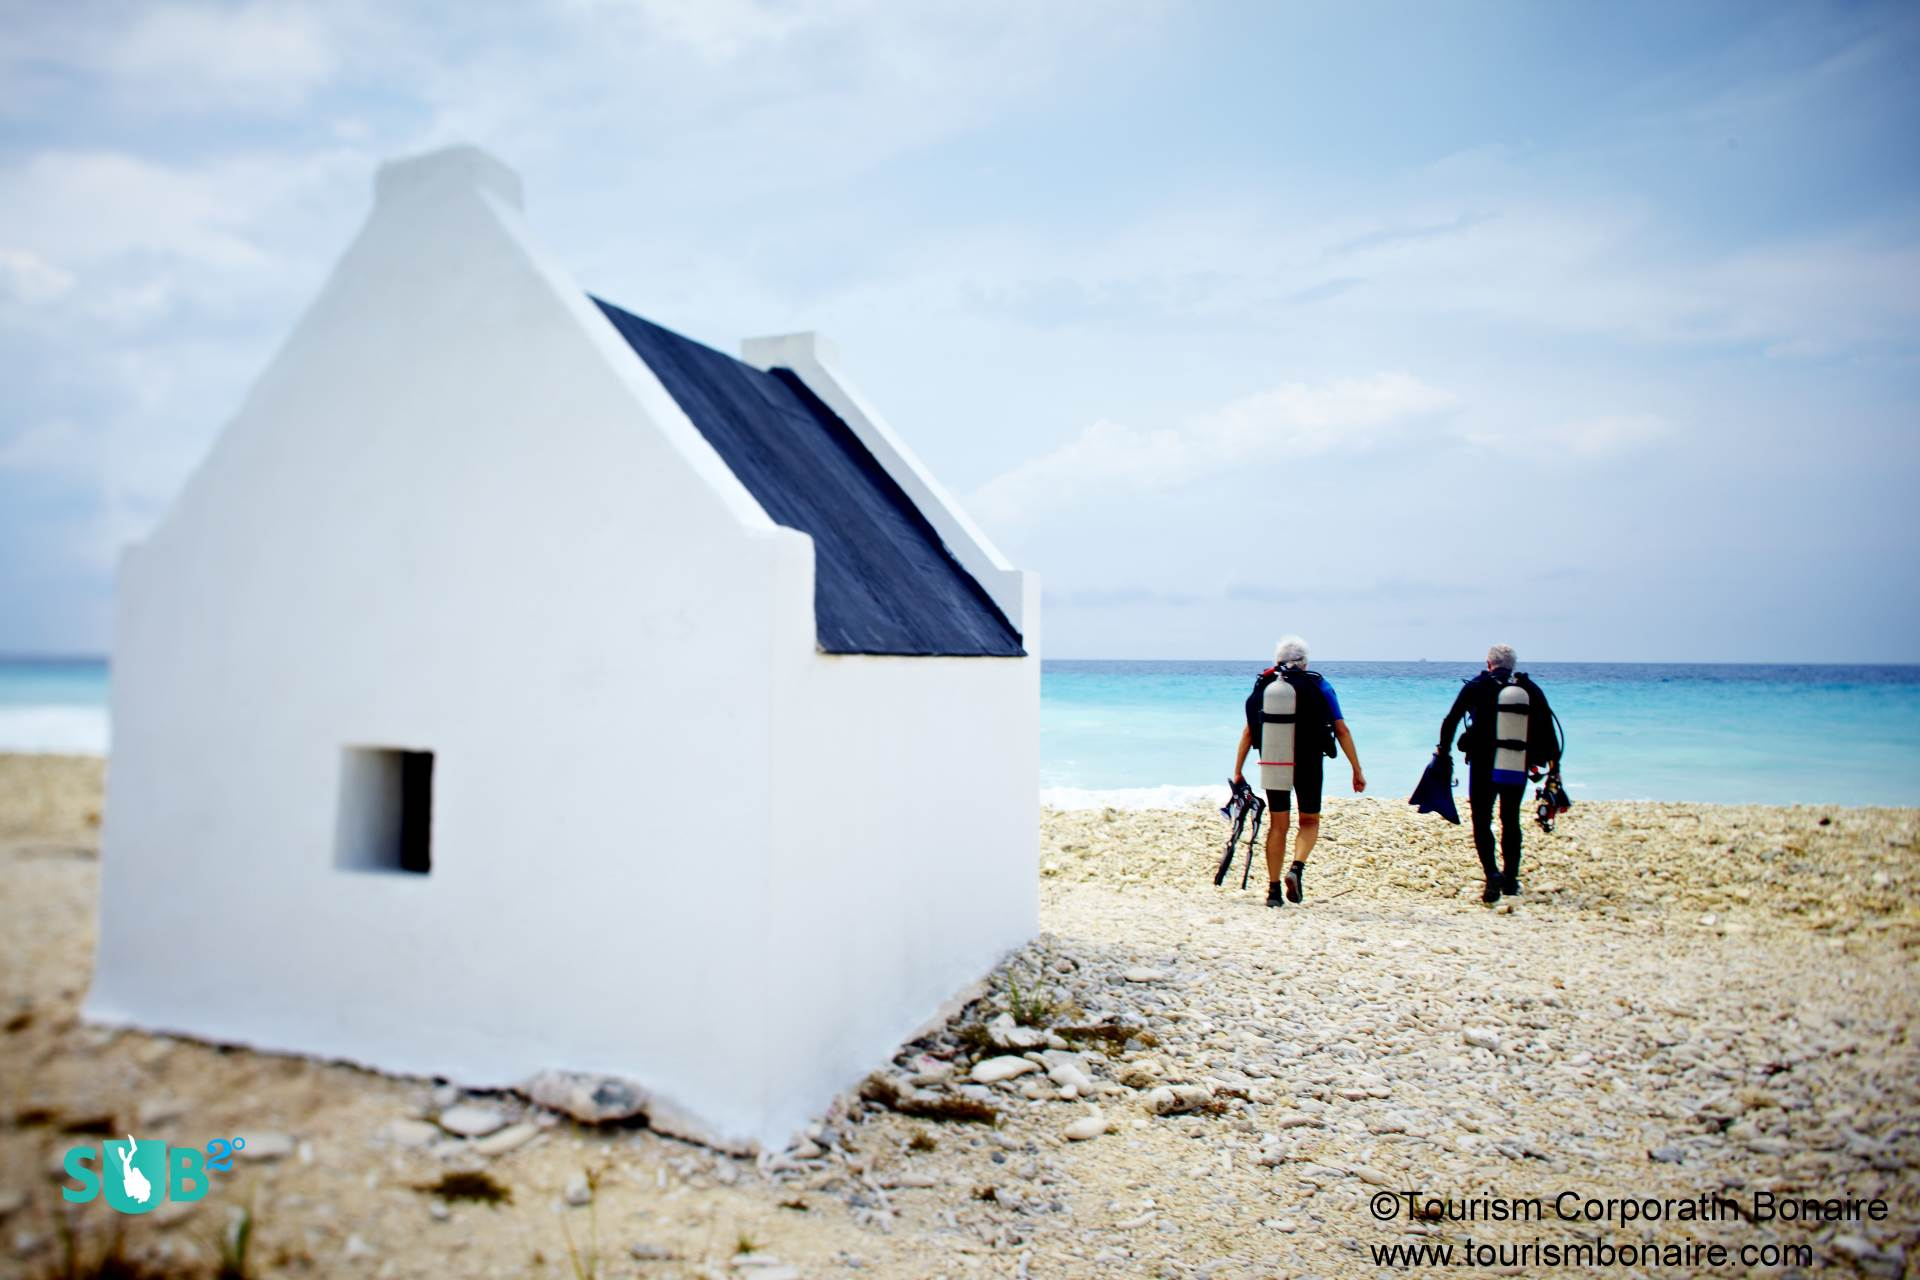 Divers effortlessly walk to the entry point of one of Bonaire's many fantastic shore dives.